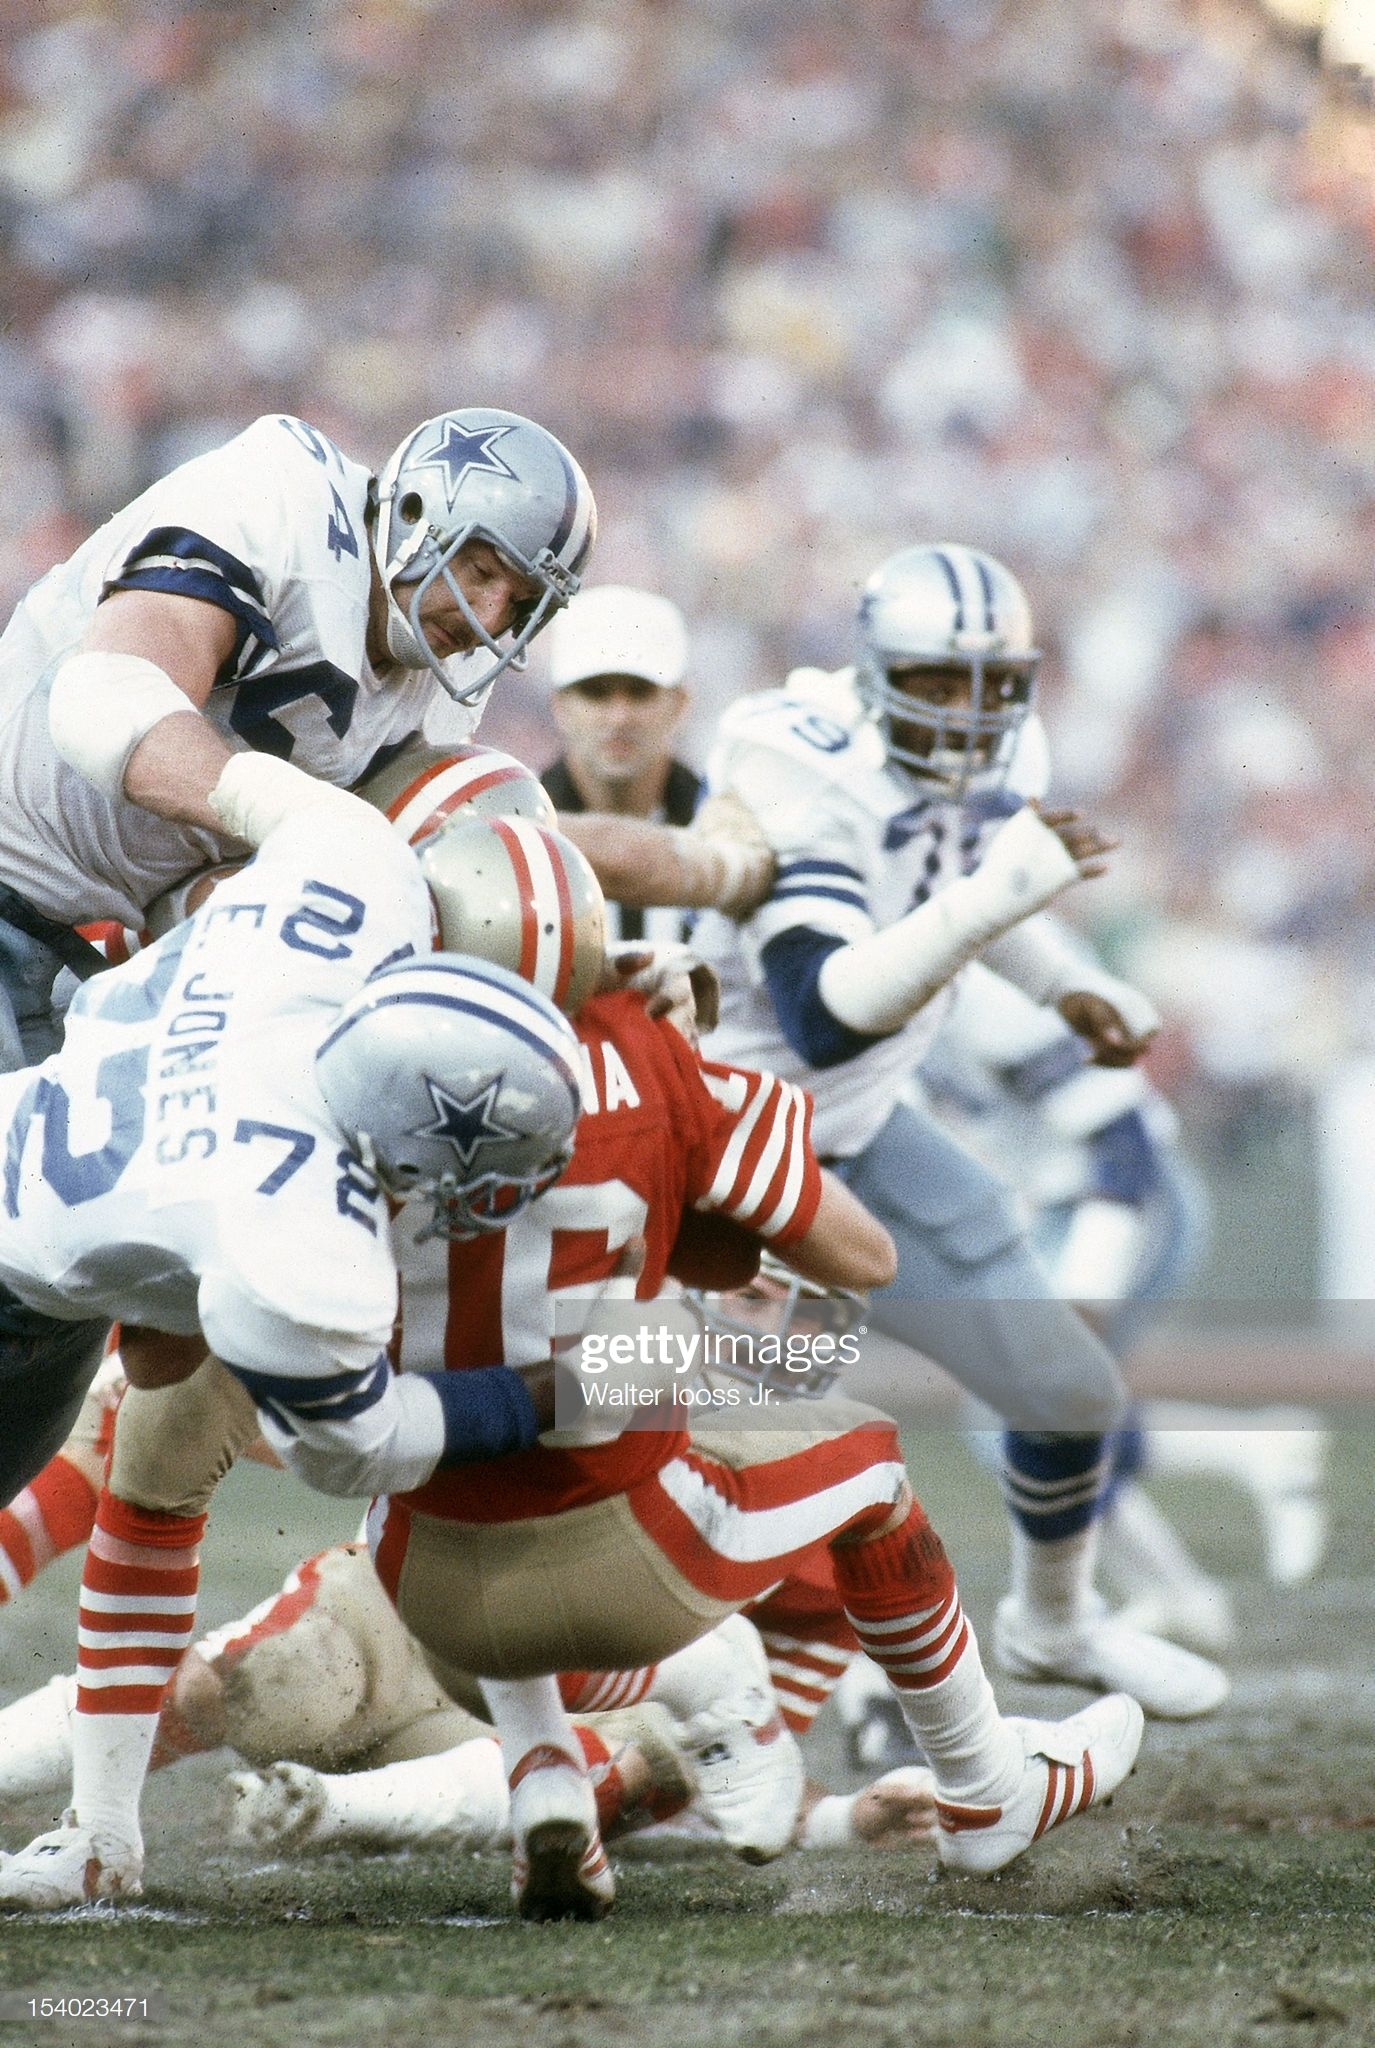 Dallas Cowboys Randy White and Ed Jones in action, making